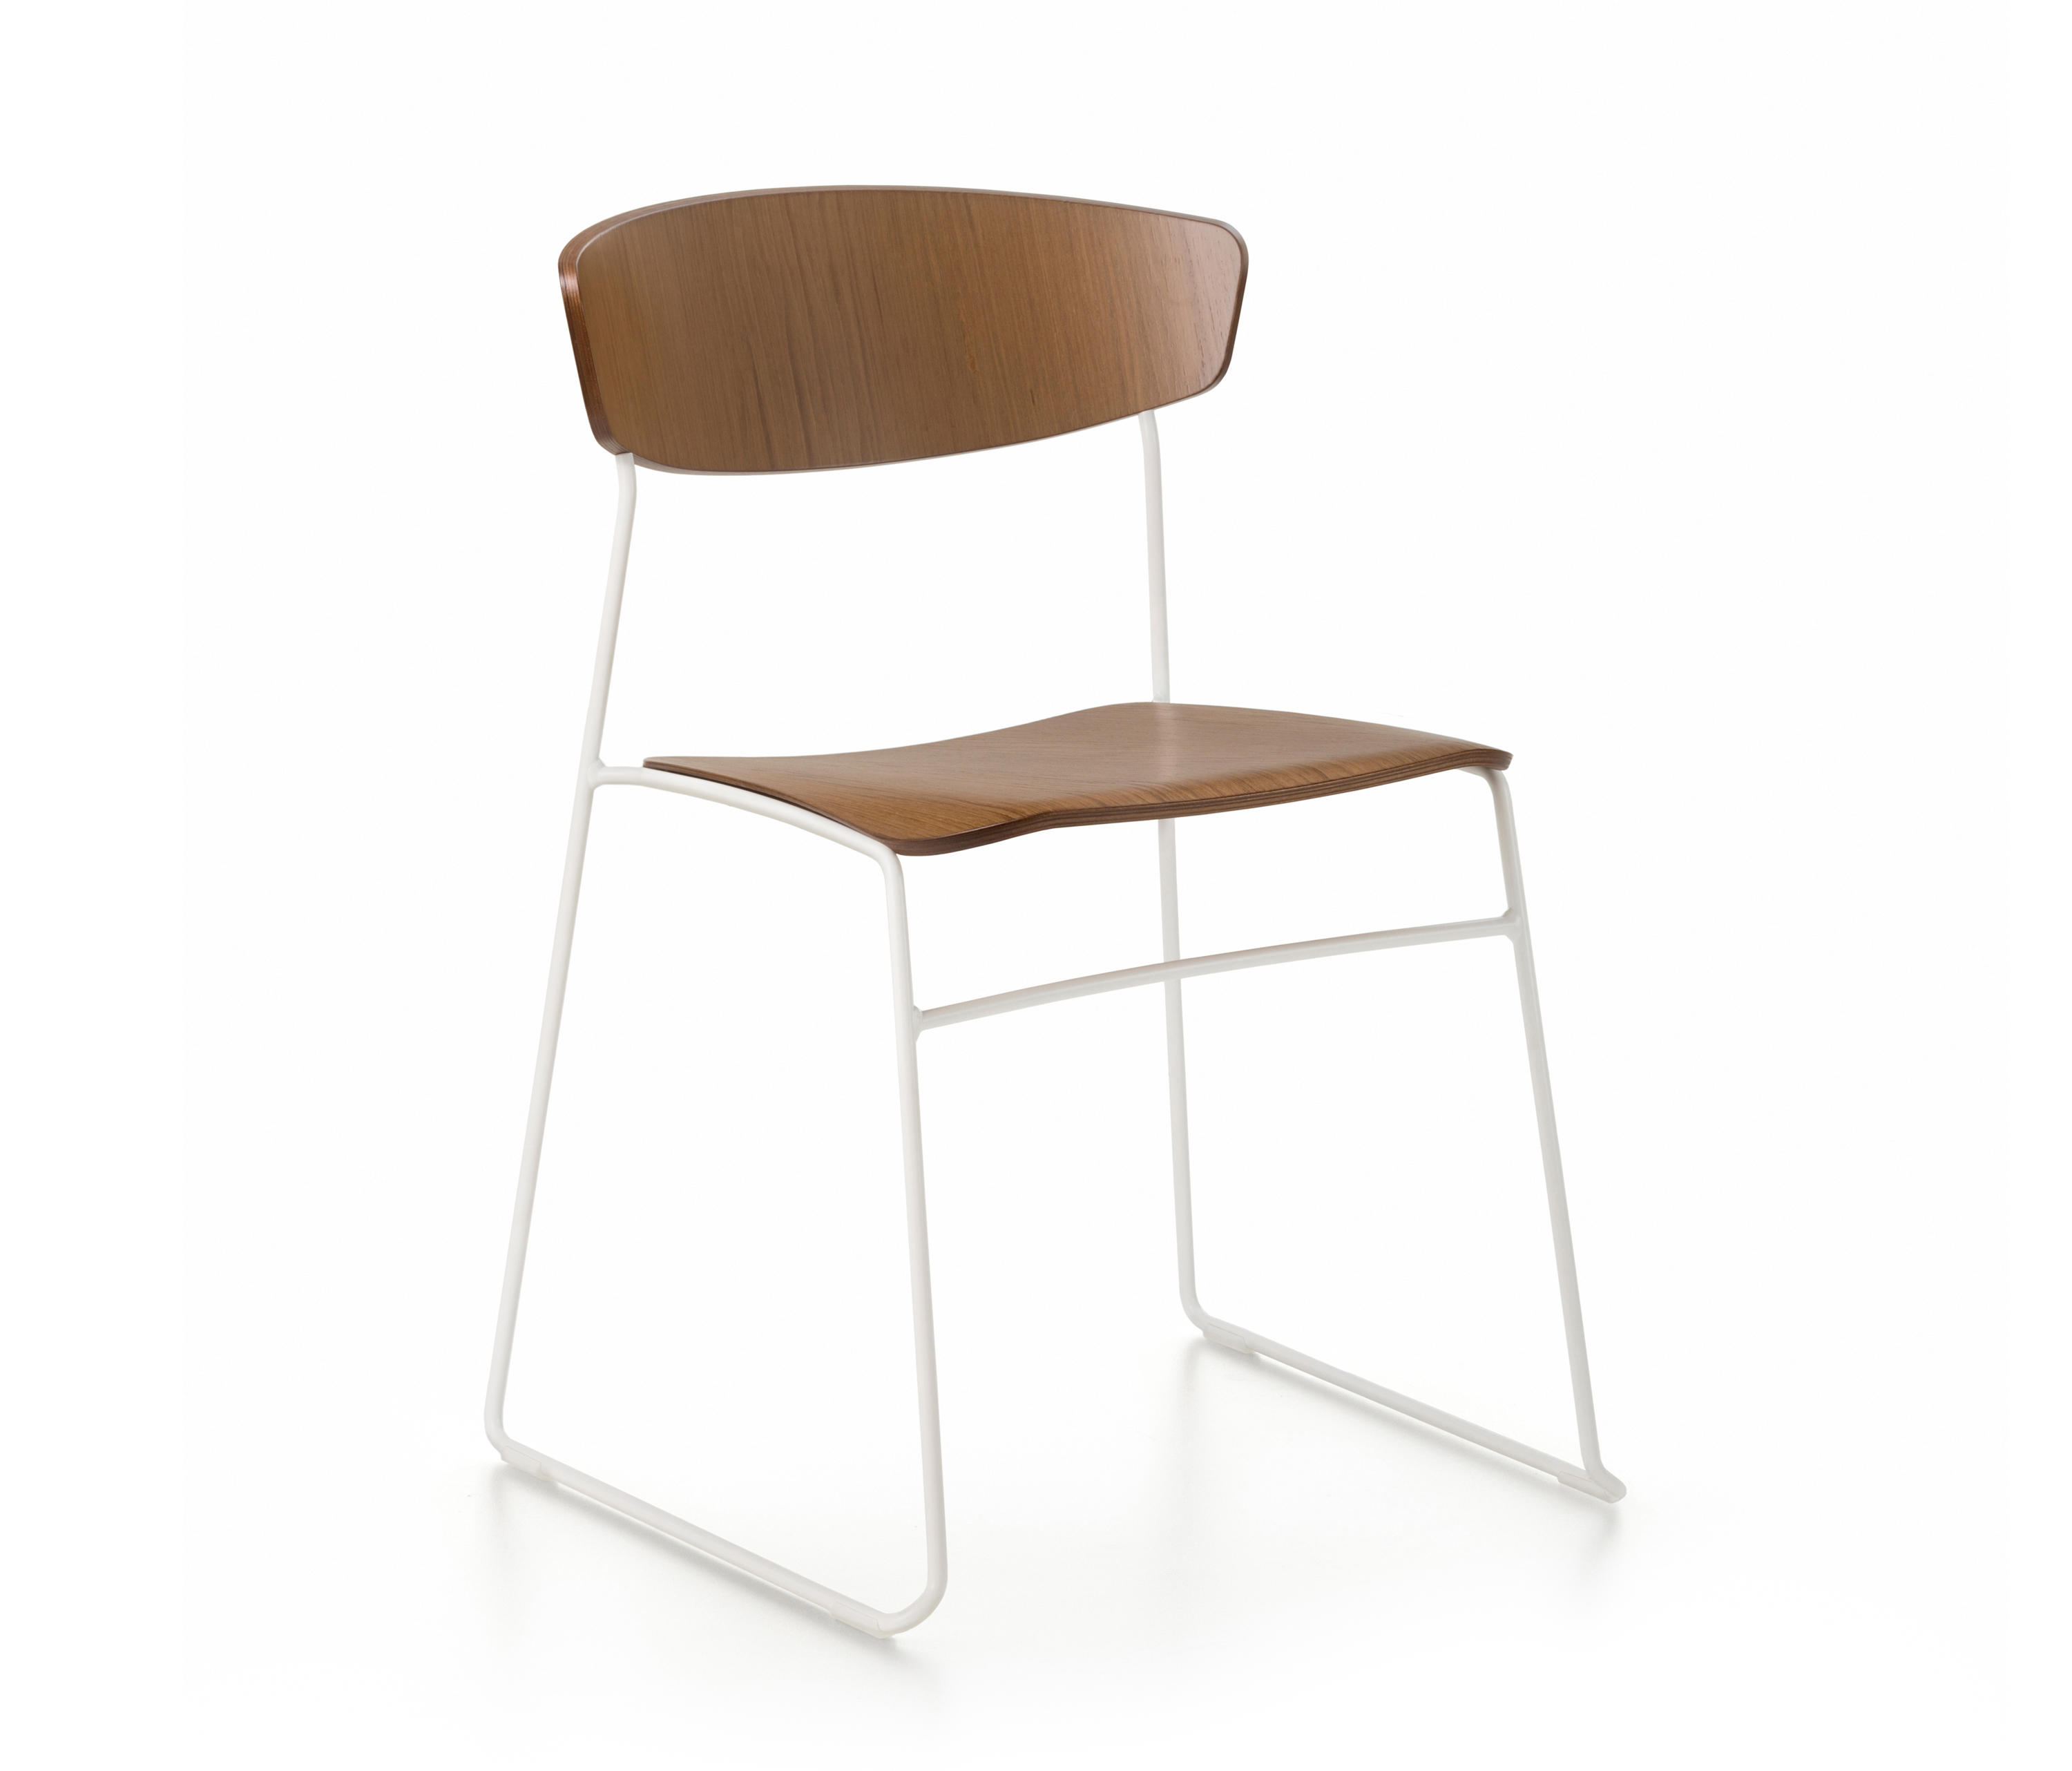 Wolfgang Metal By Fornasarig | Chairs ...